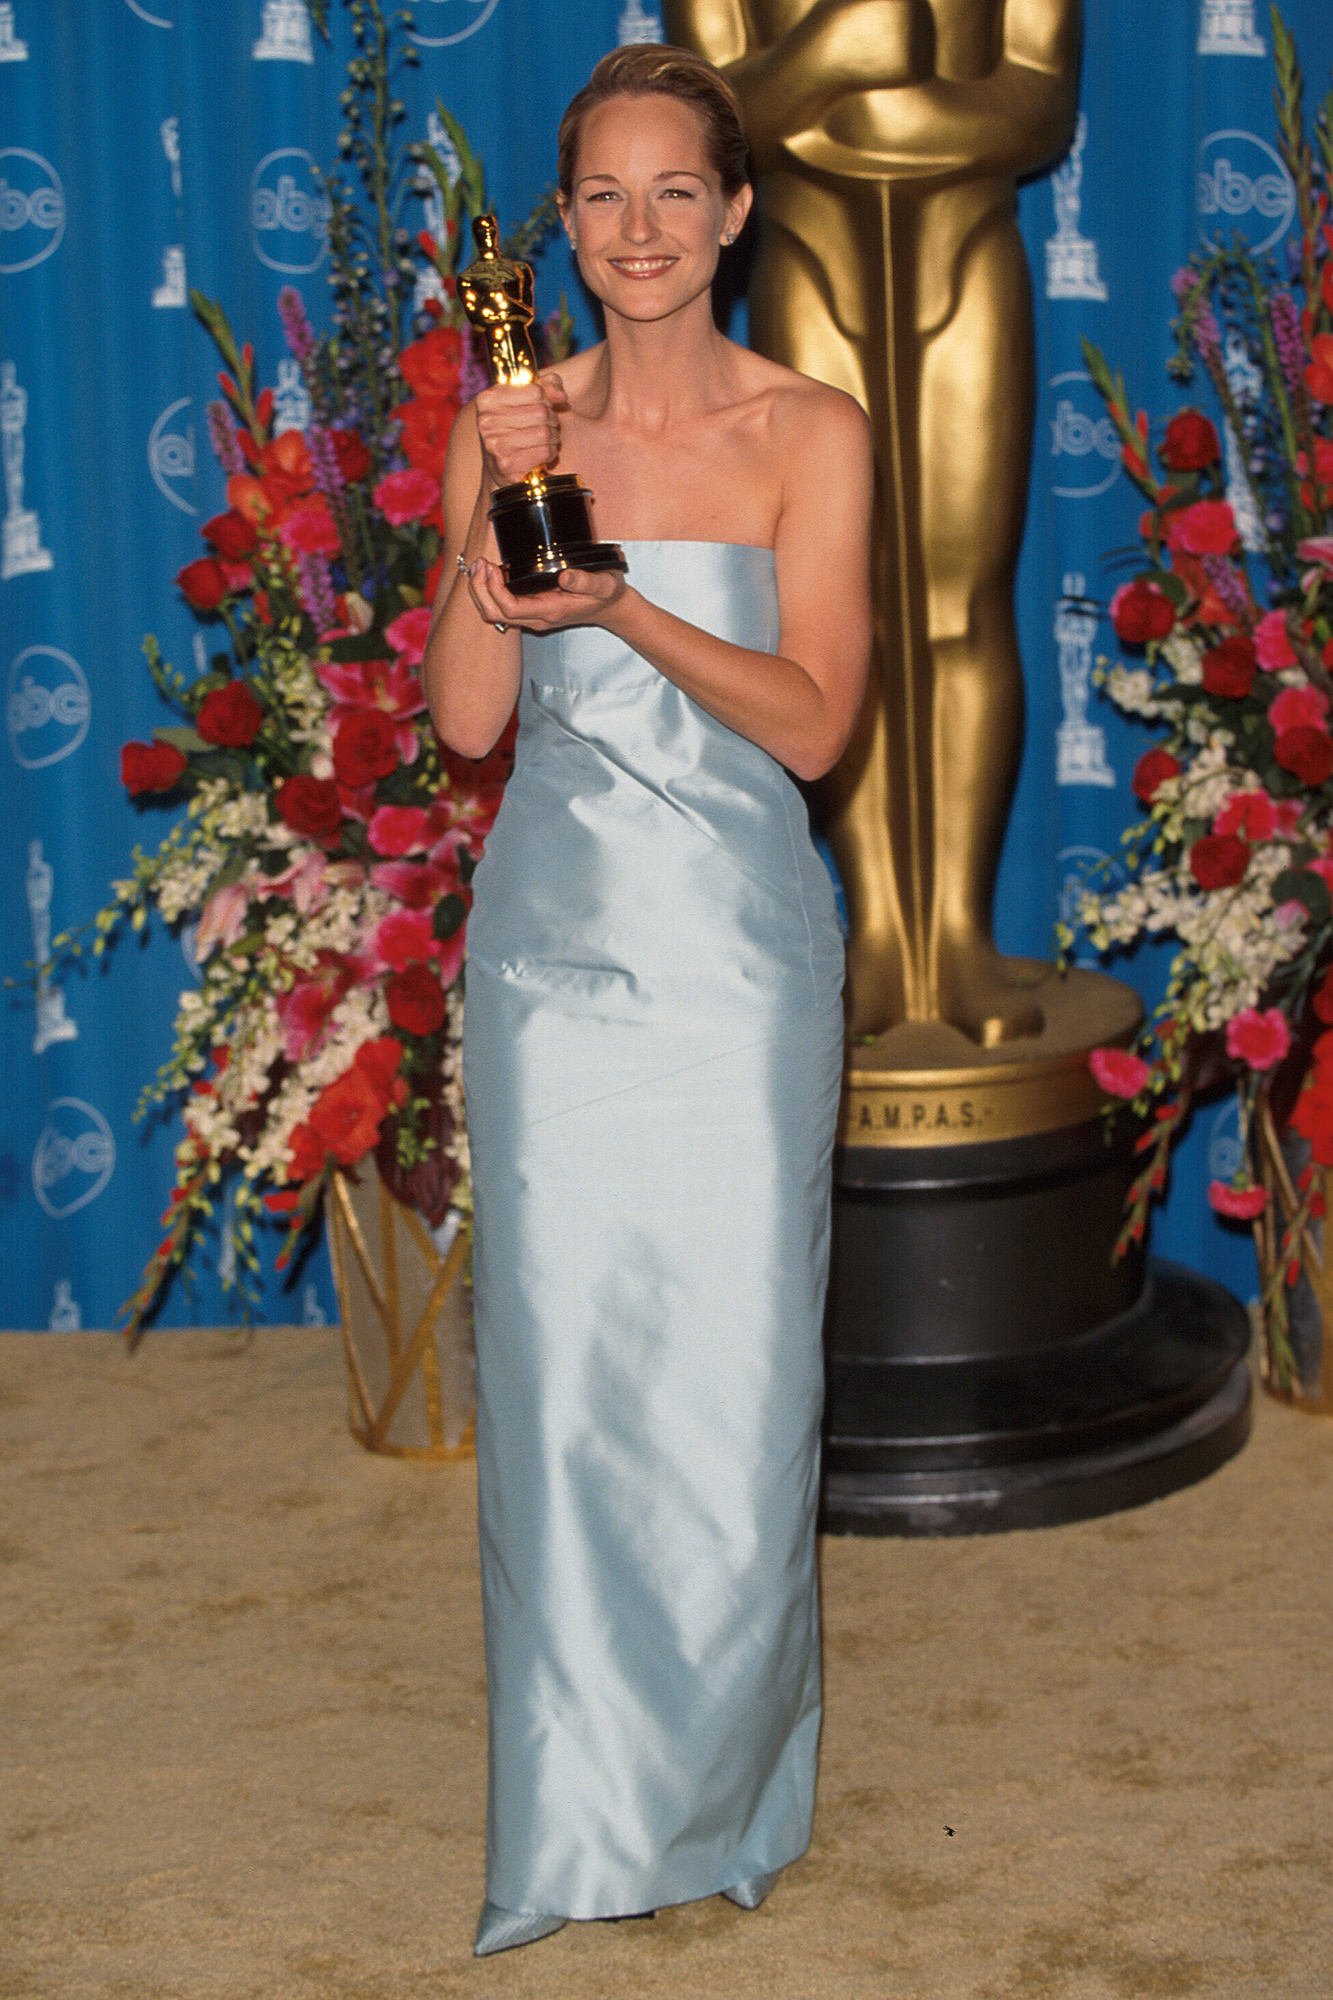 Best Actress winner Helen Hunt (As Good as It Gets)